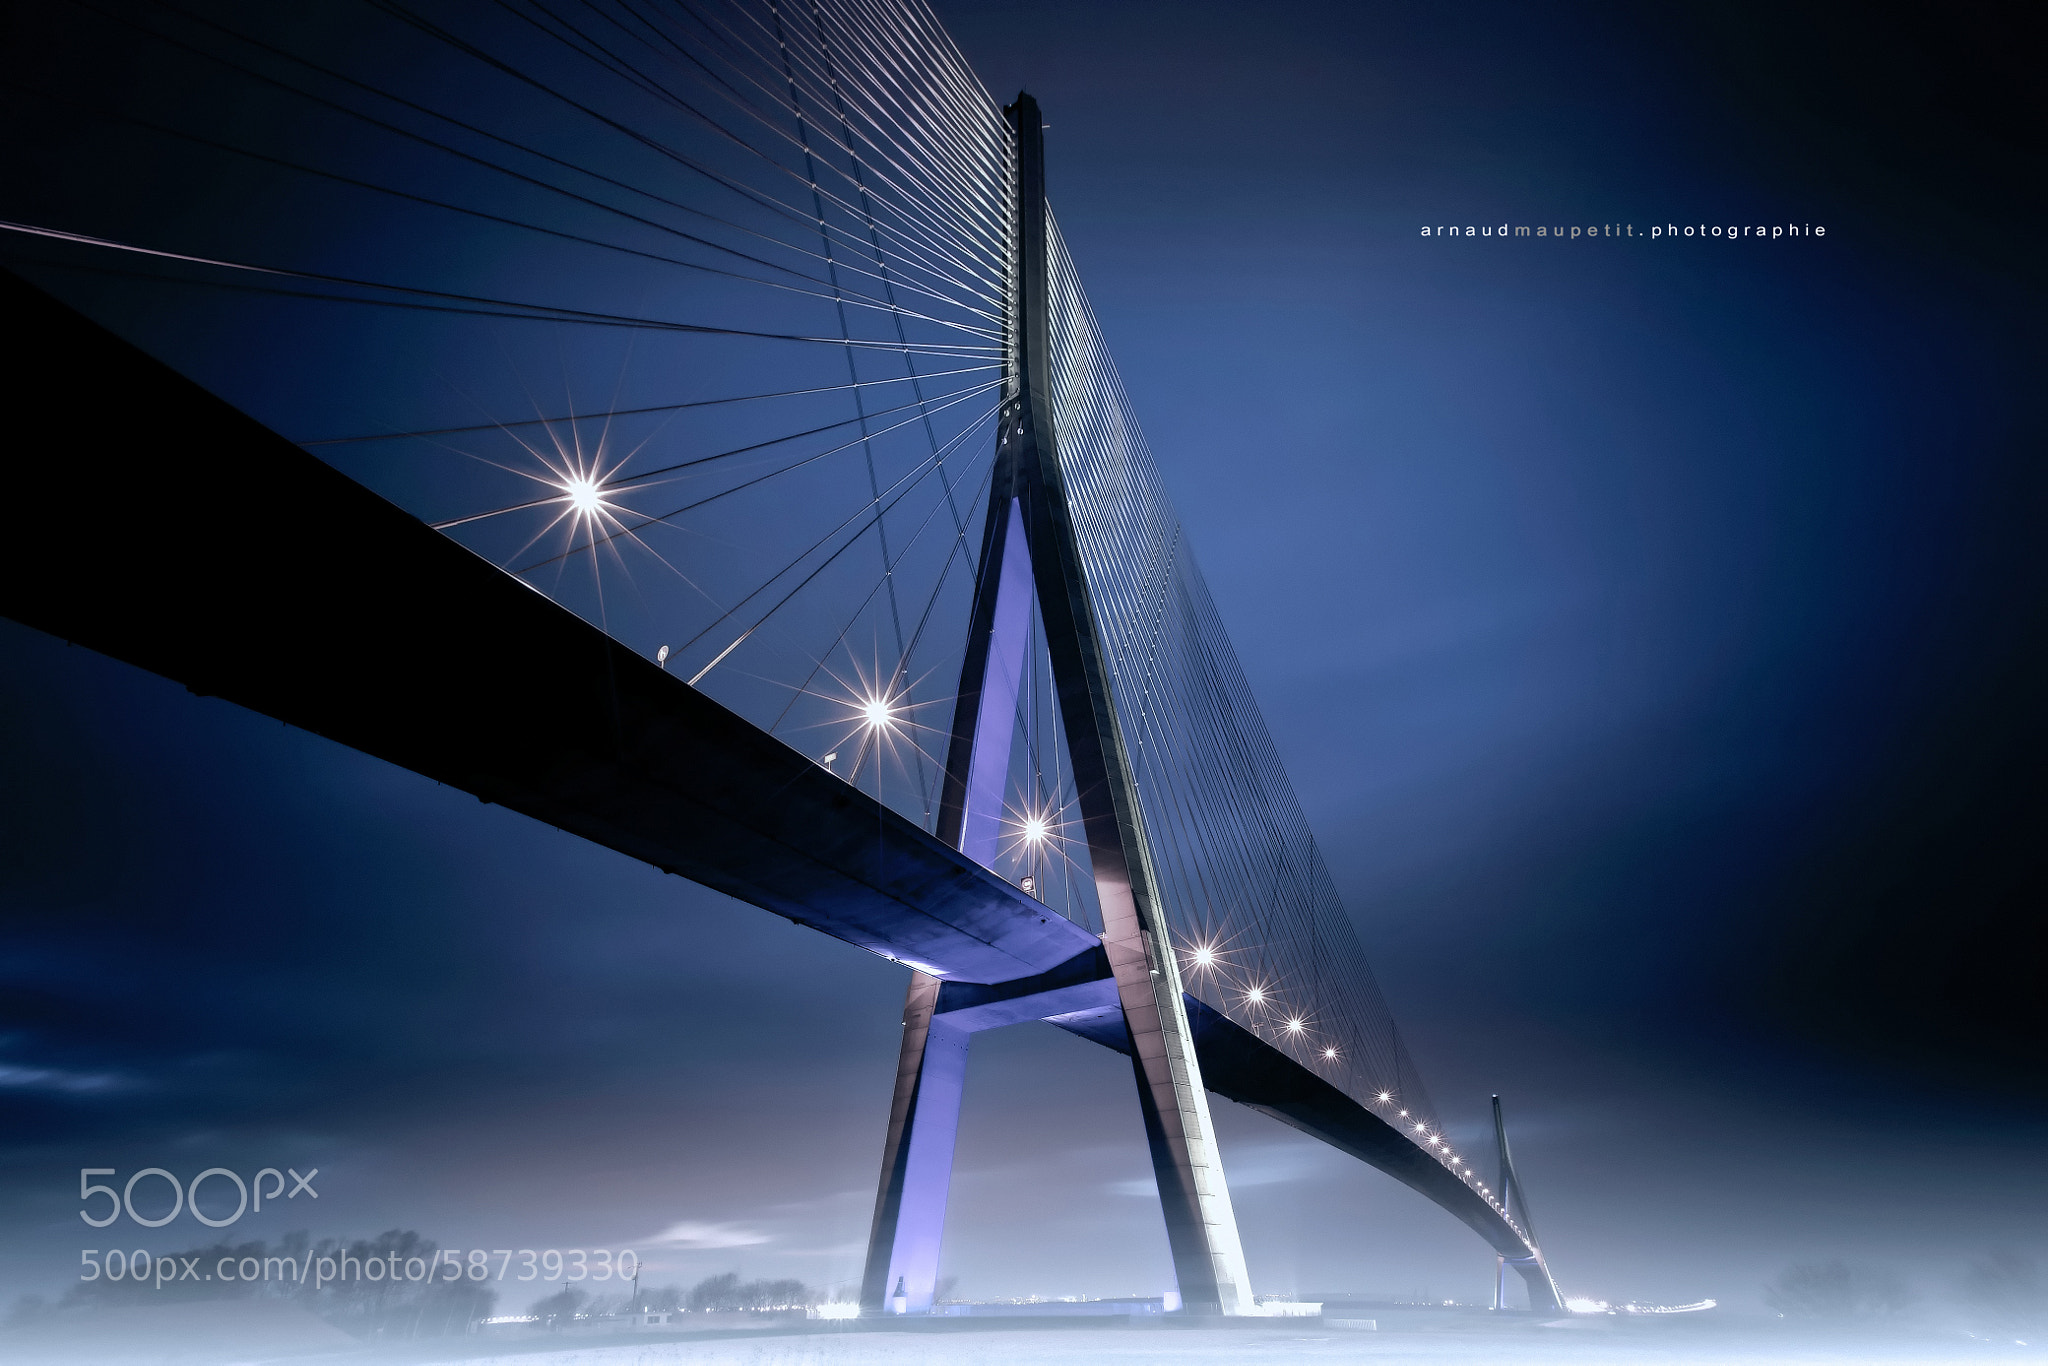 Photograph Pont de Normandie - FRANCE by Arnaud MAUPETIT on 500px